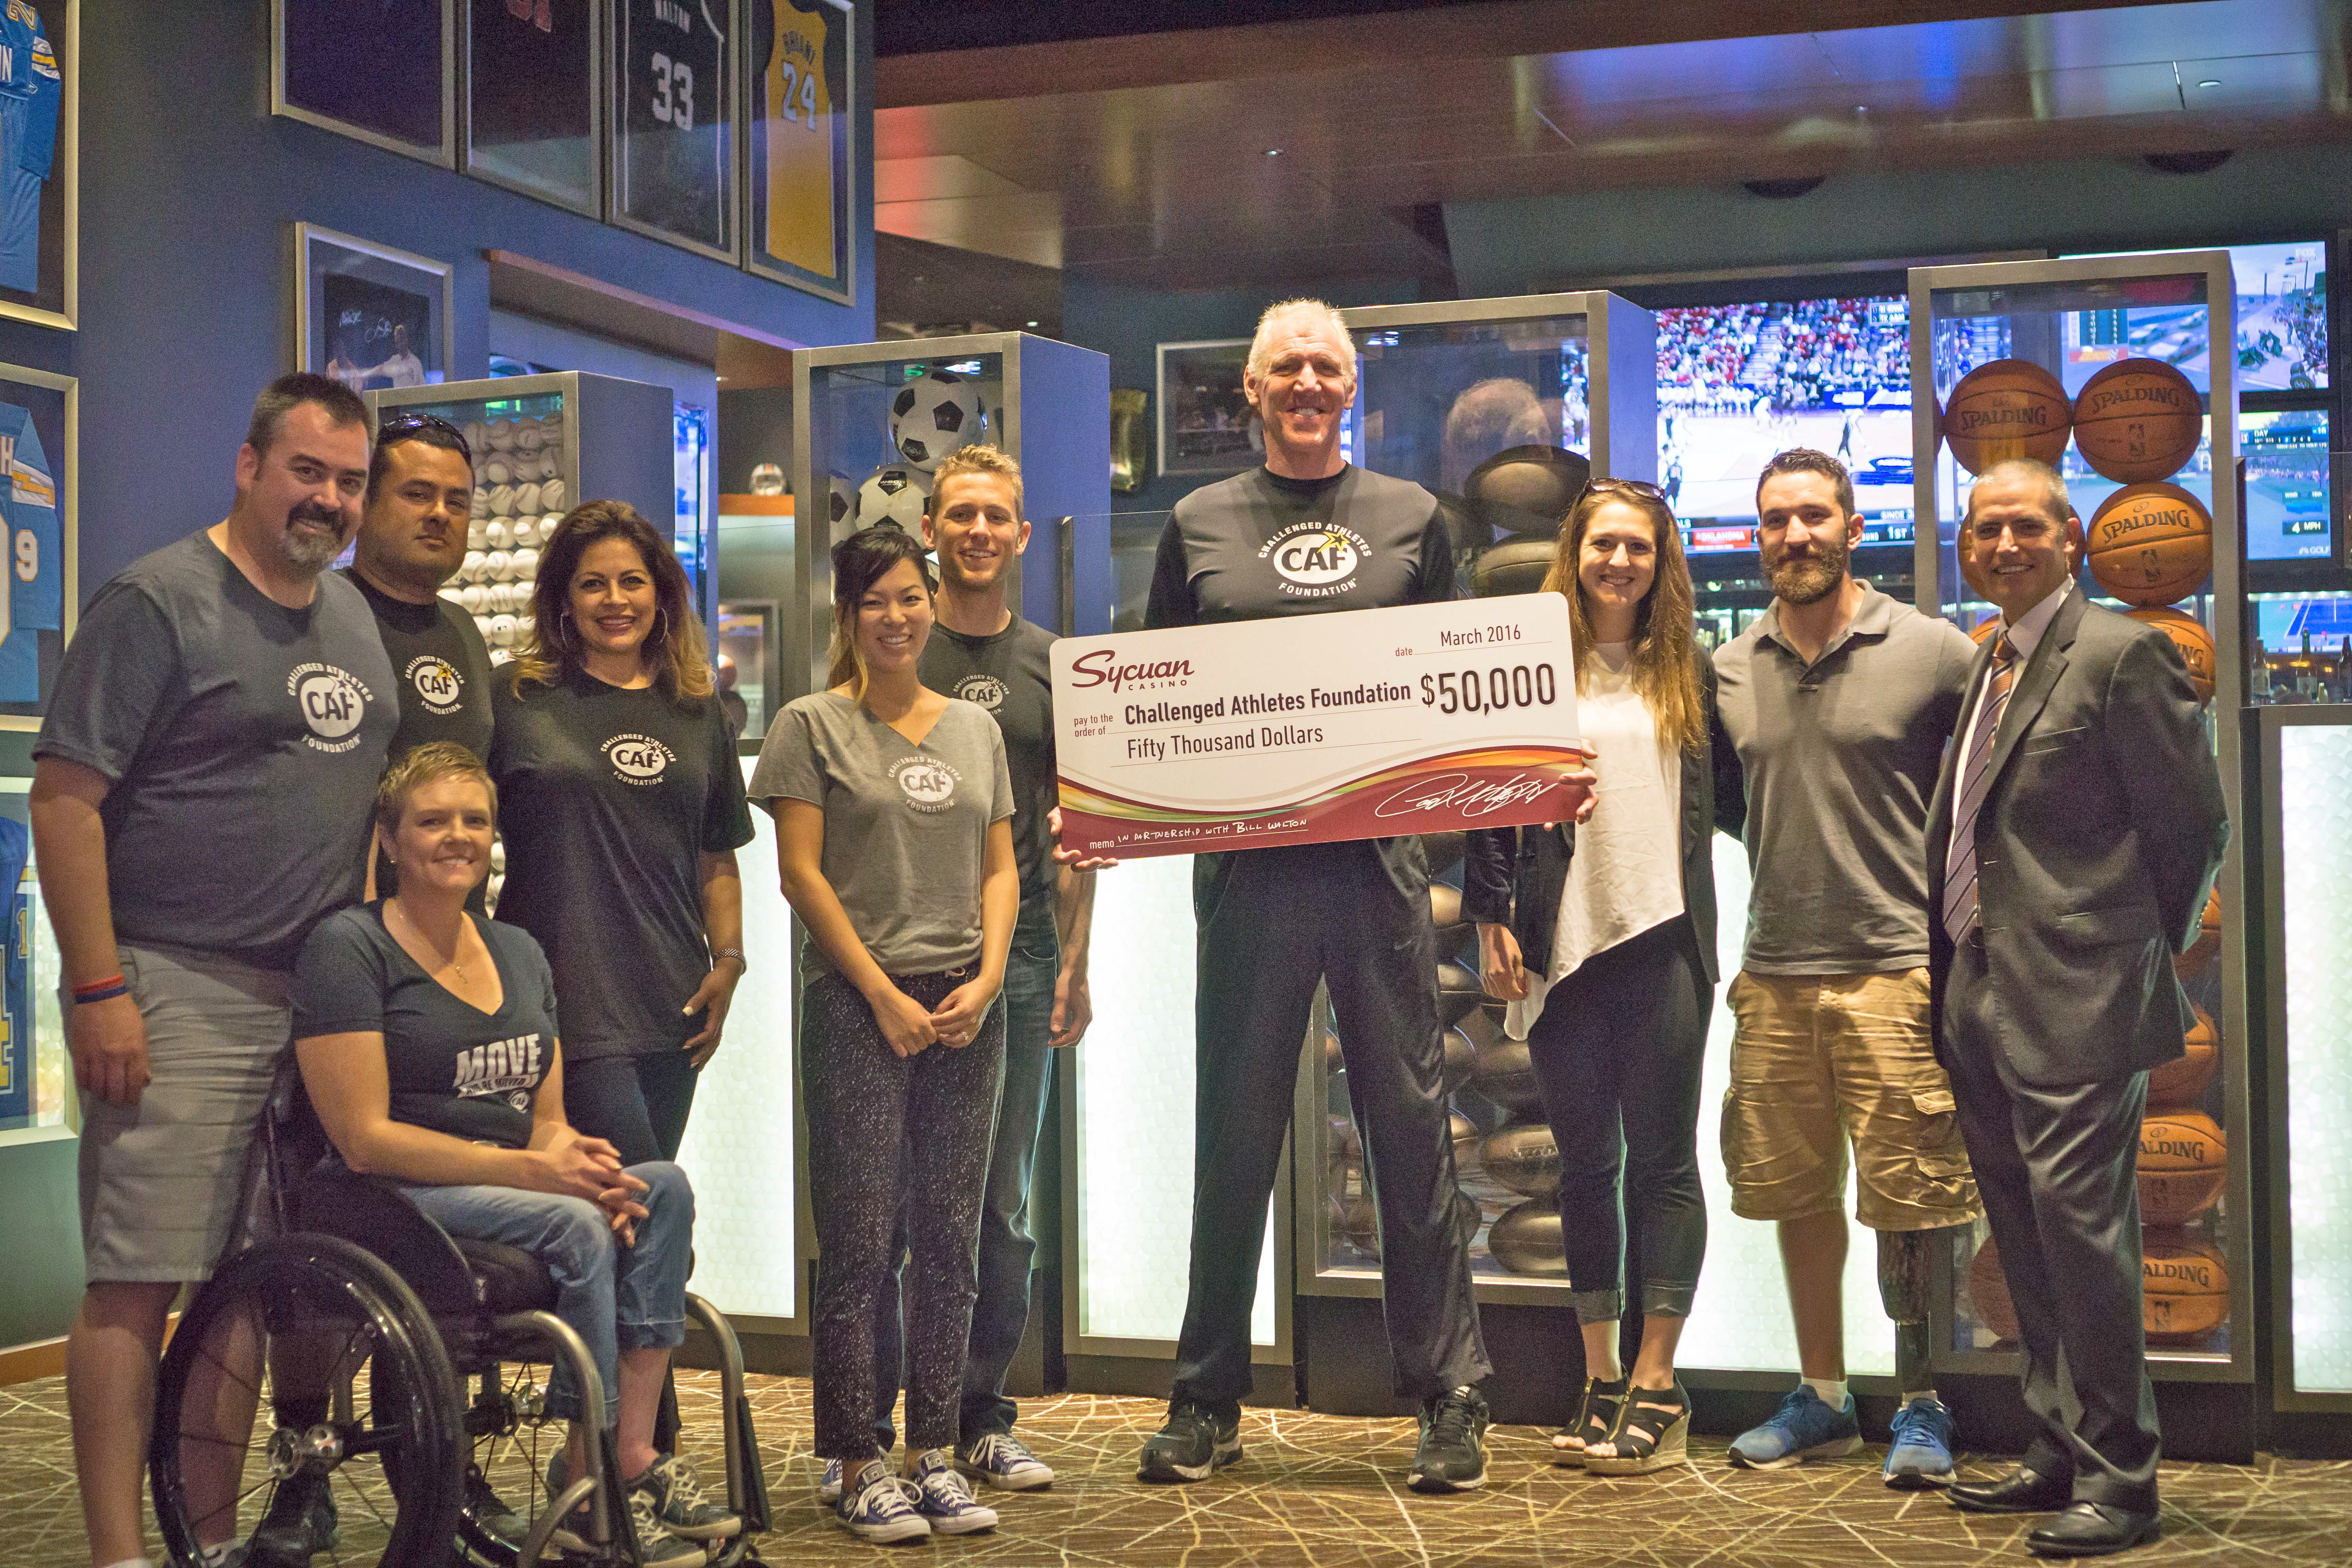 Bill Walton (center) and representatives of the Challenged Athletes Foundation accept a $50,000 donation presented by Sycuan Casino's general manager, John Dinius, right.